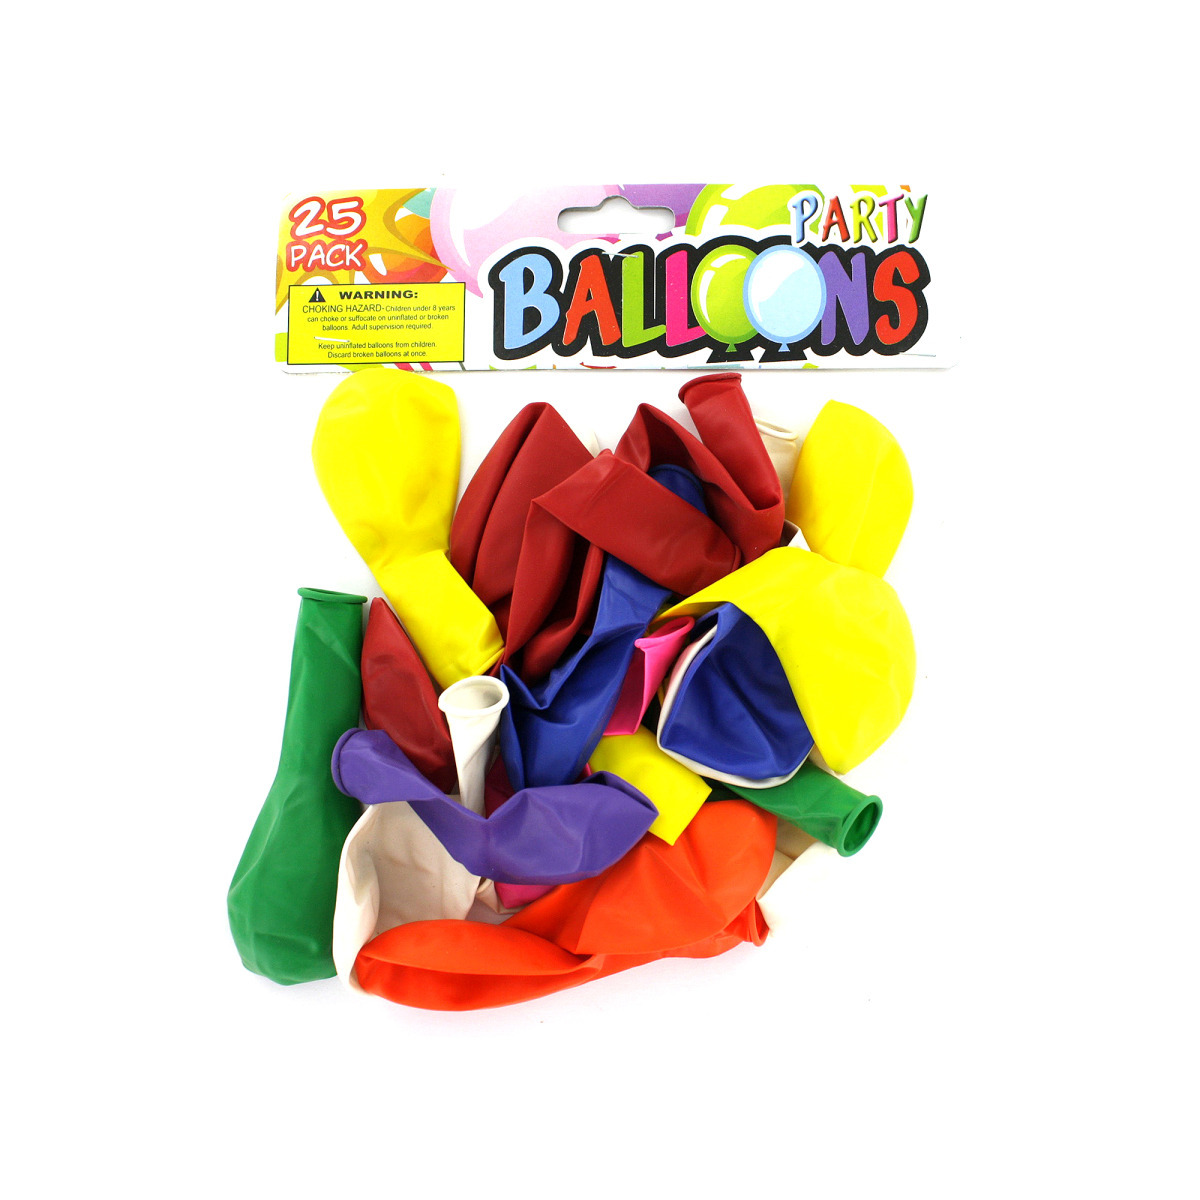 ''Party BALLOONs - 12'''' [1278094]''